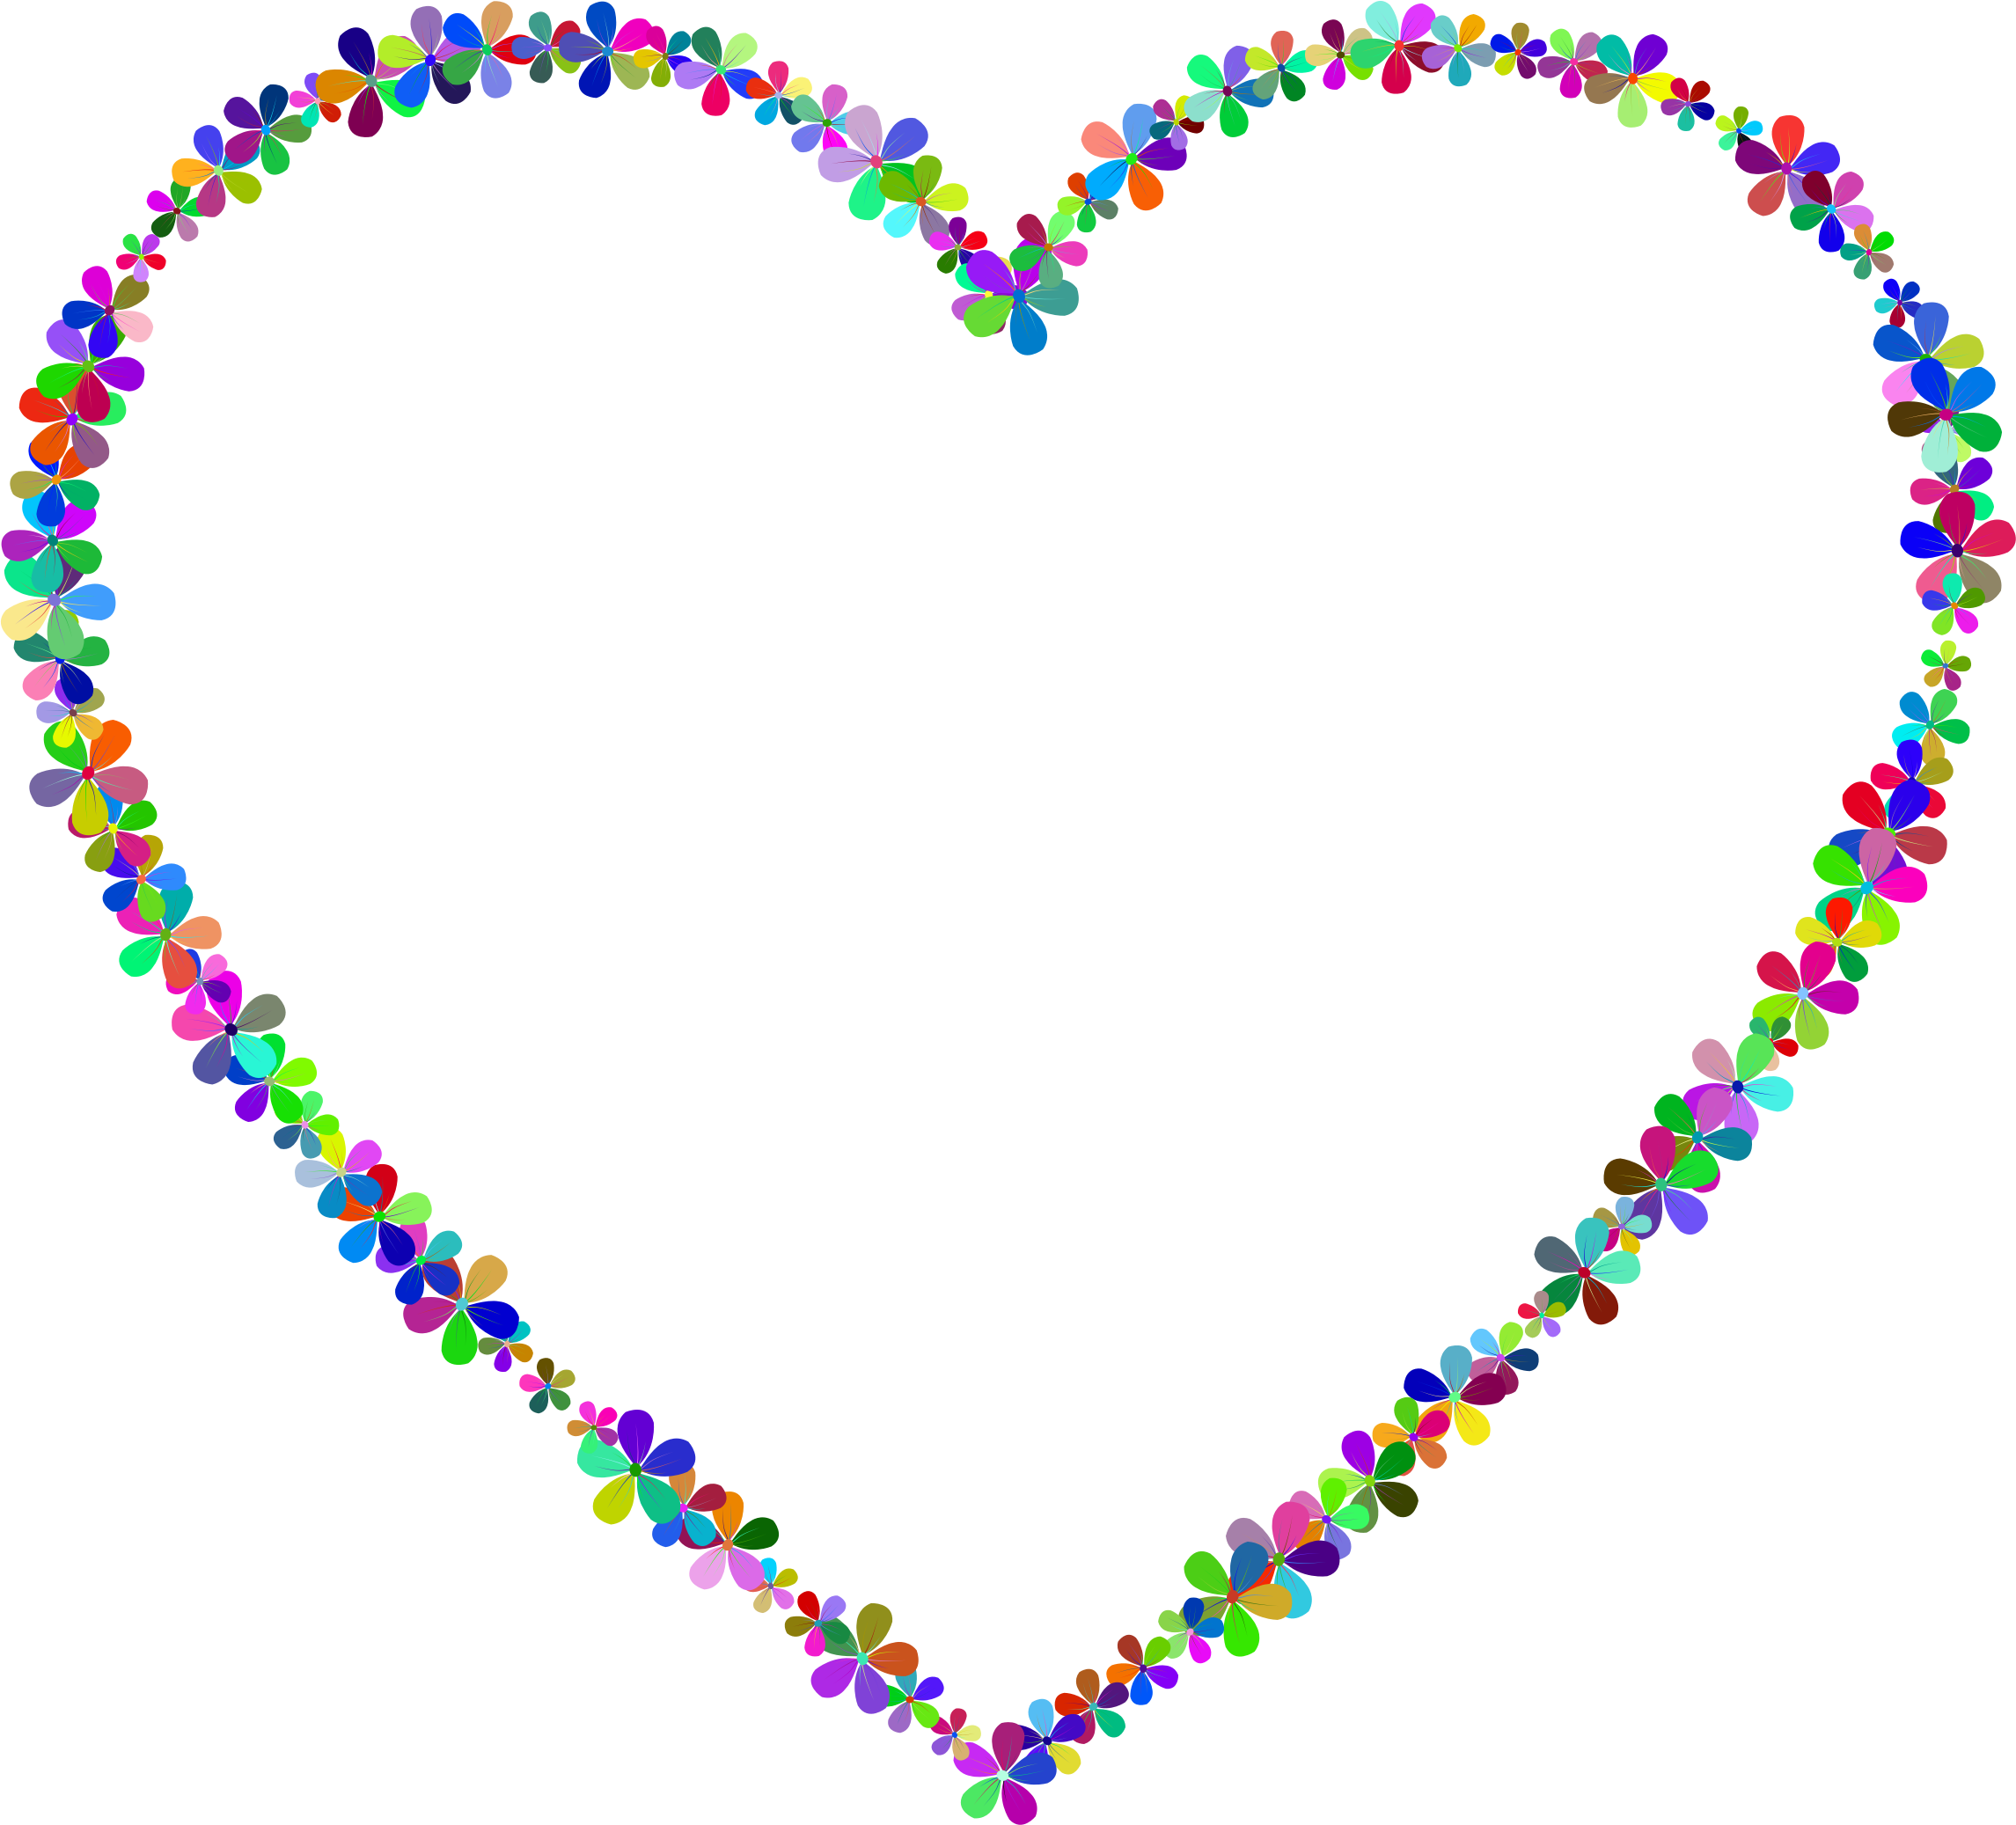 Heart clipart outline clipart library download Clipart - Prismatic Floral Heart Outline clipart library download